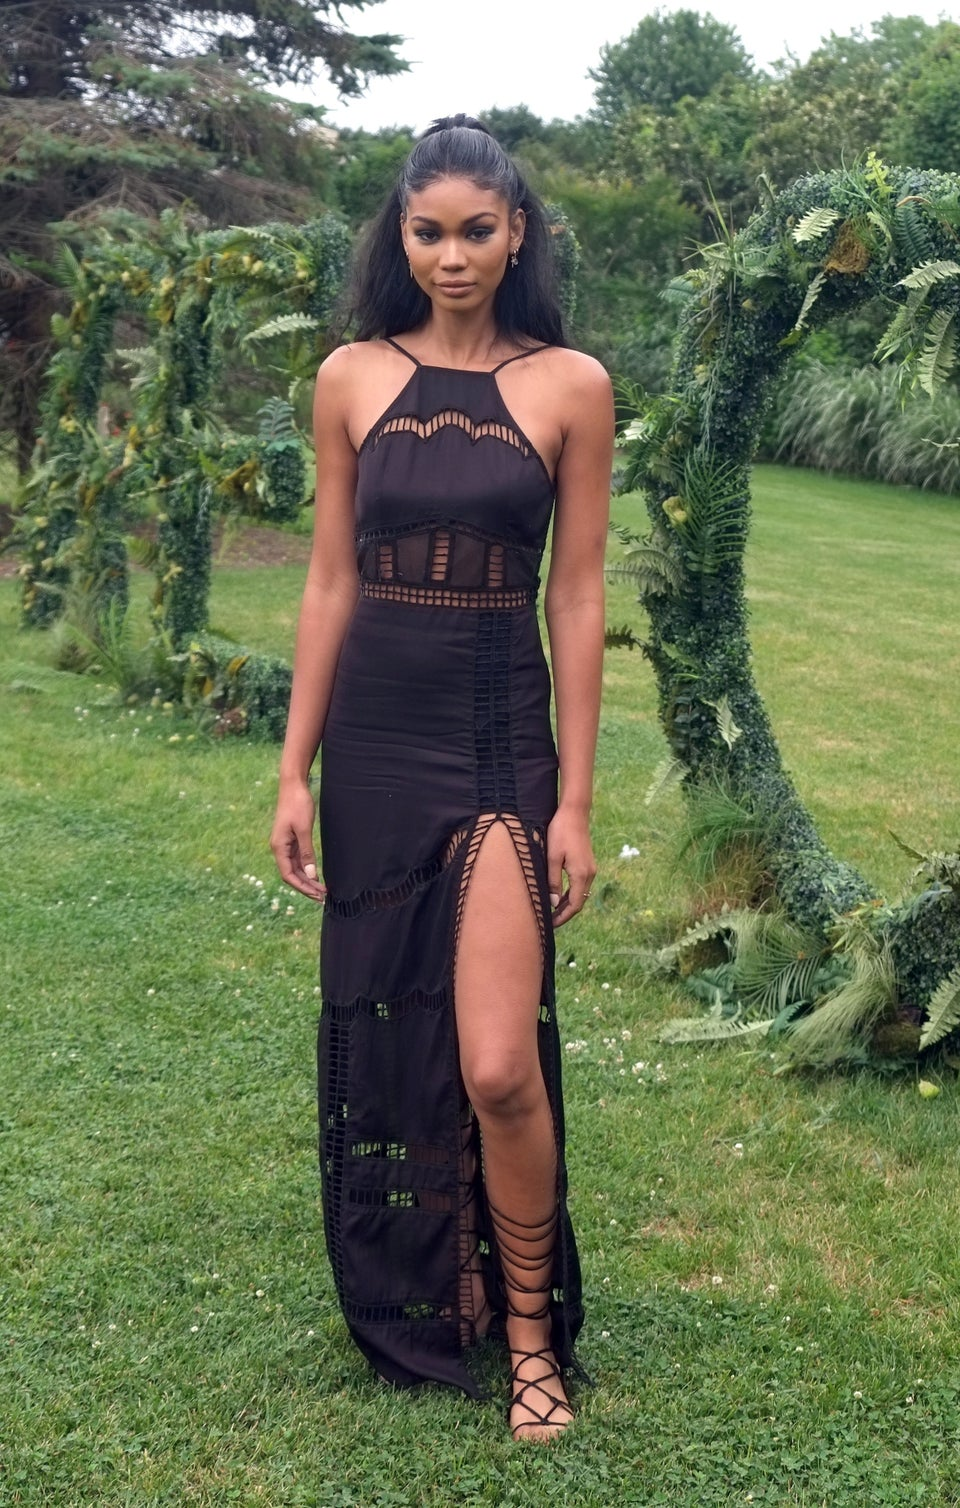 Look of the Day: Chanel Iman Stuns in Romantic Maxi Dress